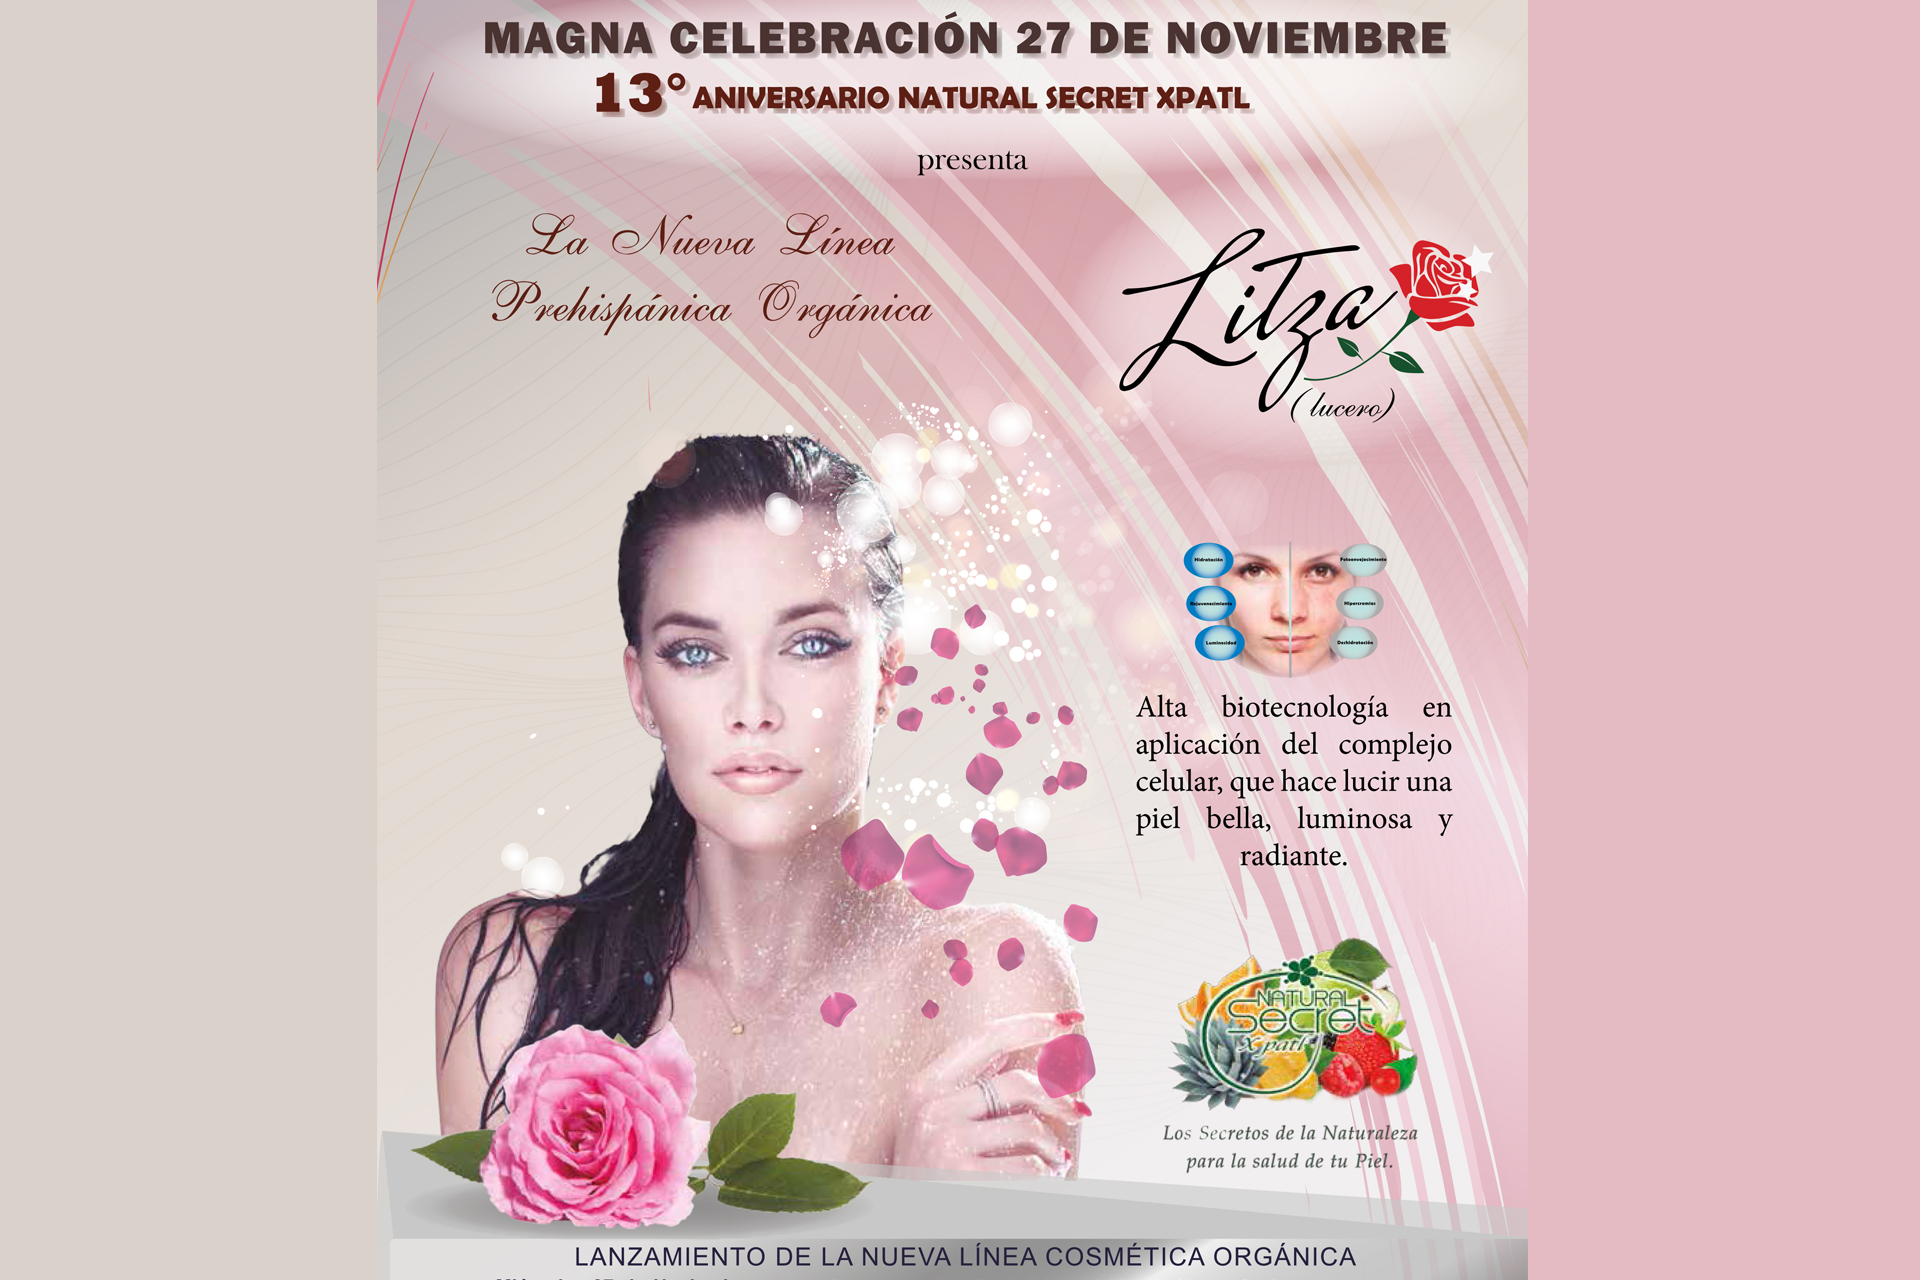 13 ANIVERSARIO NATURAL SECRET XPATL